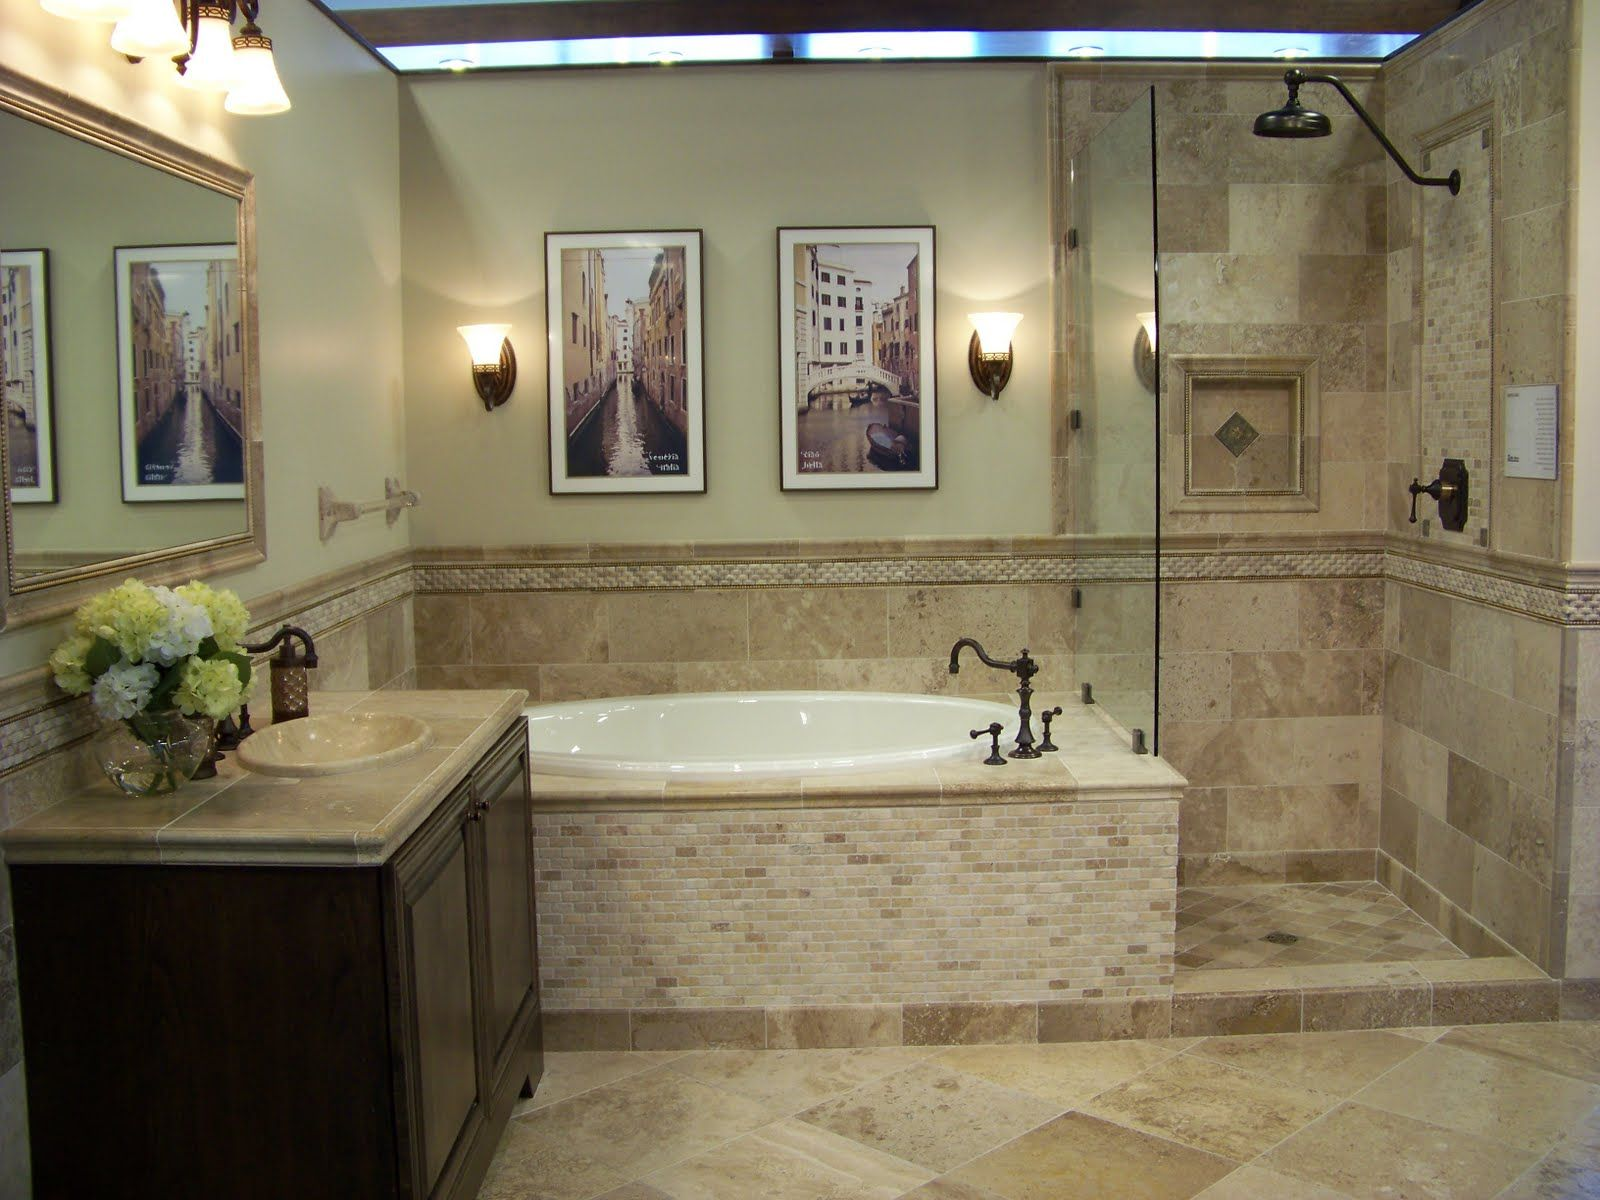 Merveilleux Travertine Bathroom Floor Tile Designs | Mixture Of Travertine Tiles Gives  This Bathroom An Earthy Natural .